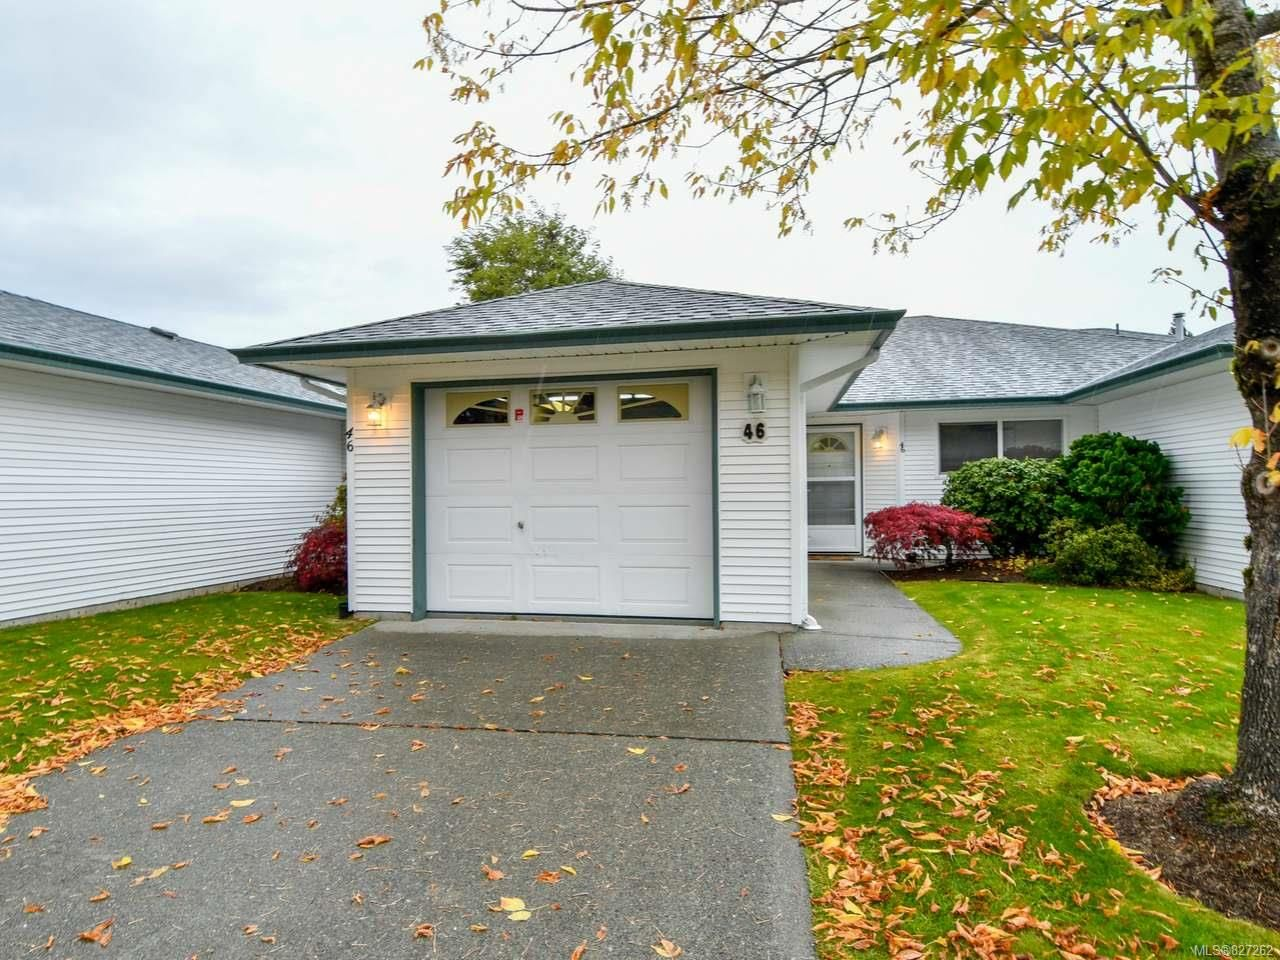 Main Photo: 46 396 Harrogate Rd in CAMPBELL RIVER: CR Willow Point Row/Townhouse for sale (Campbell River)  : MLS®# 827262